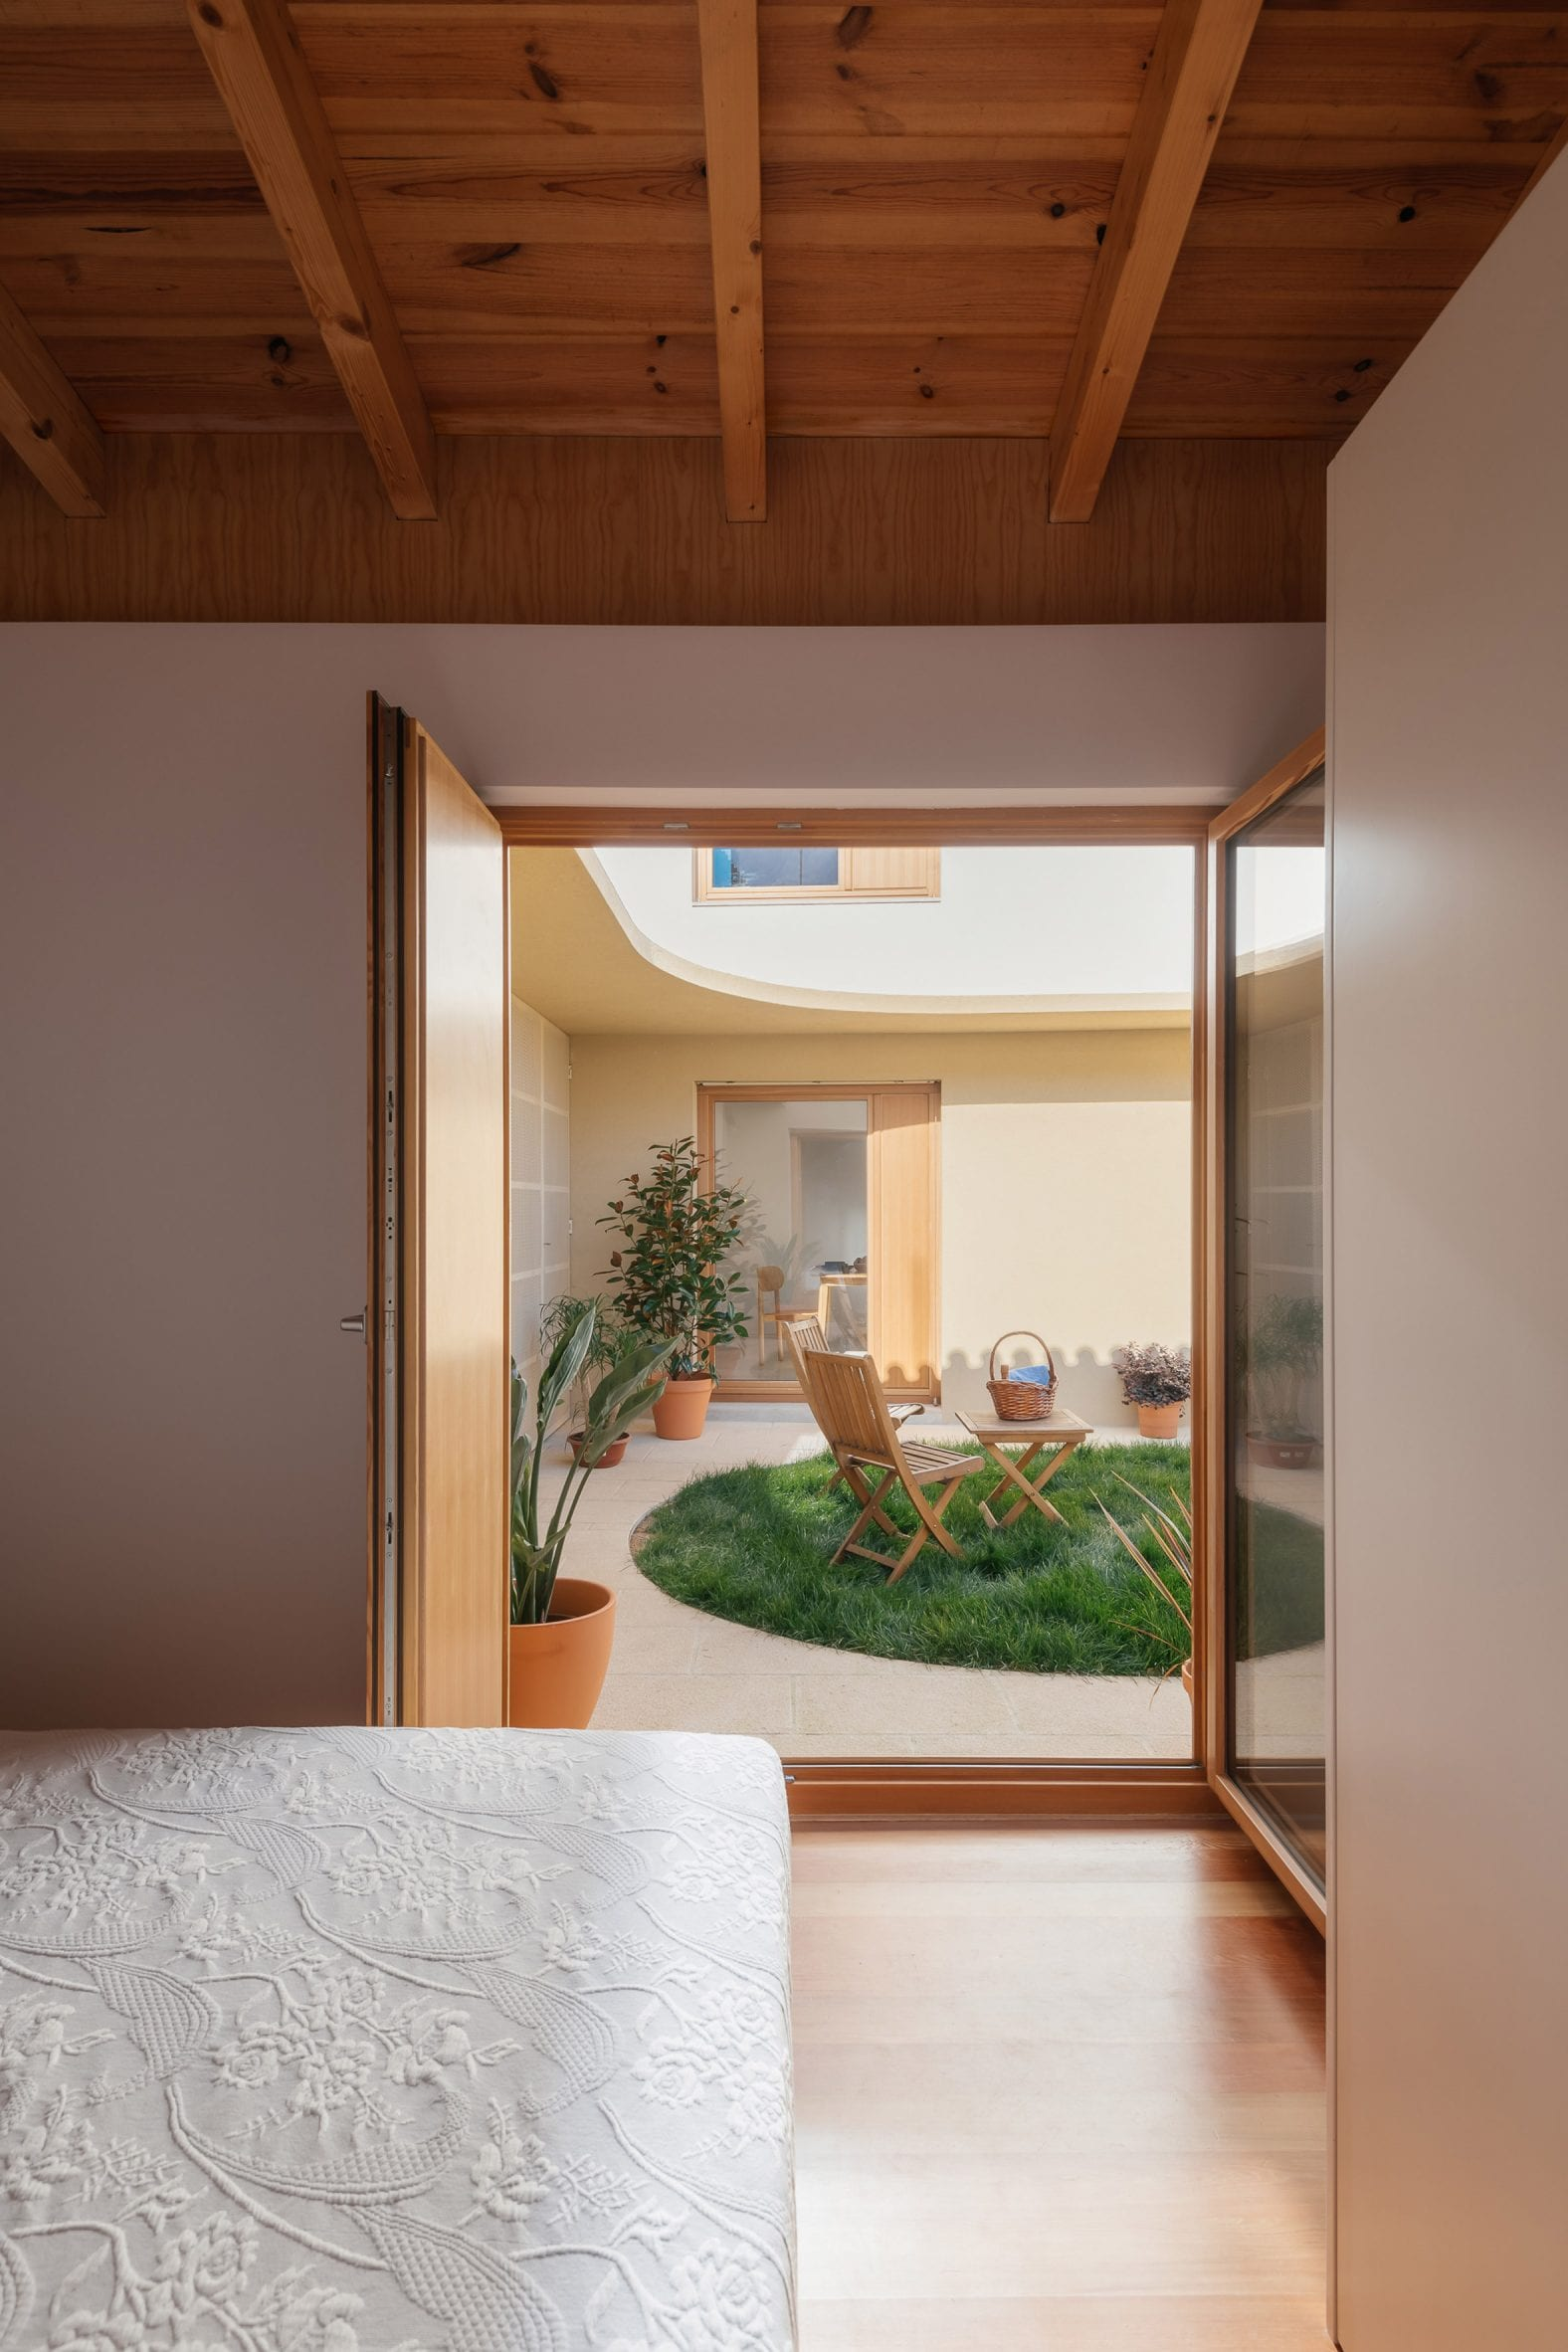 Bedroom in Puppeteers House by REDO Architects